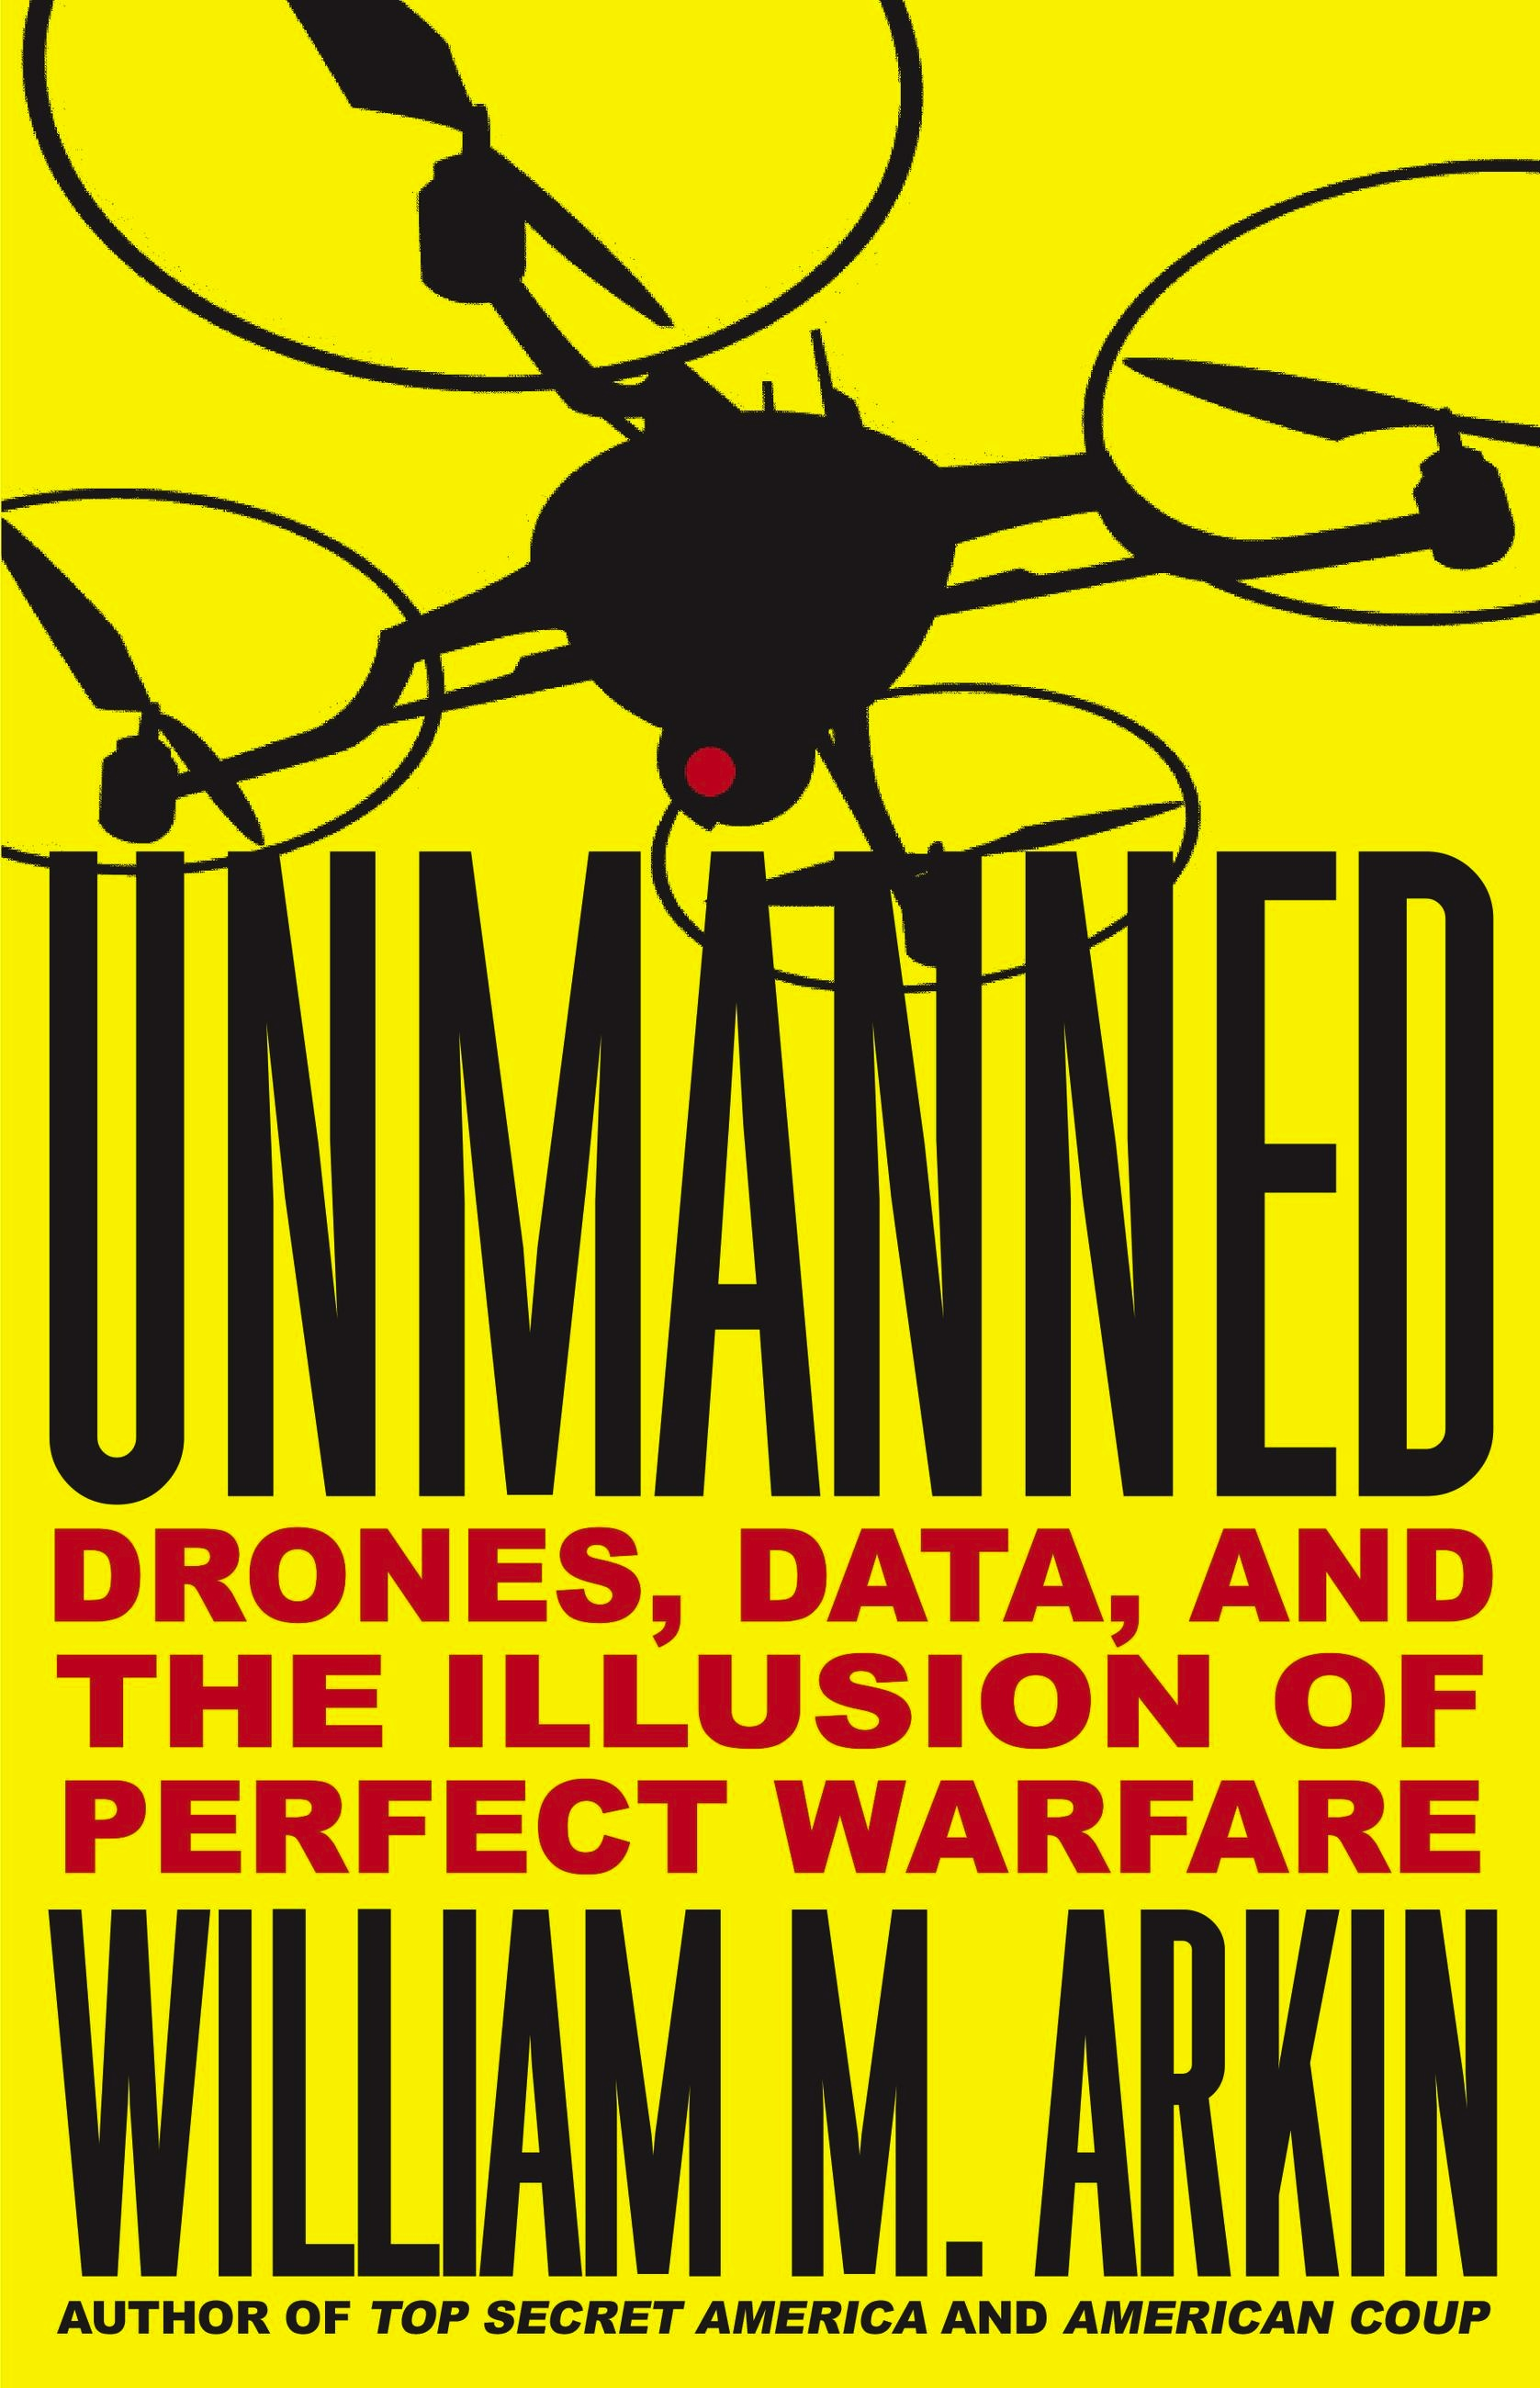 Unmanned by William M. Arkin | Hachette Book Group